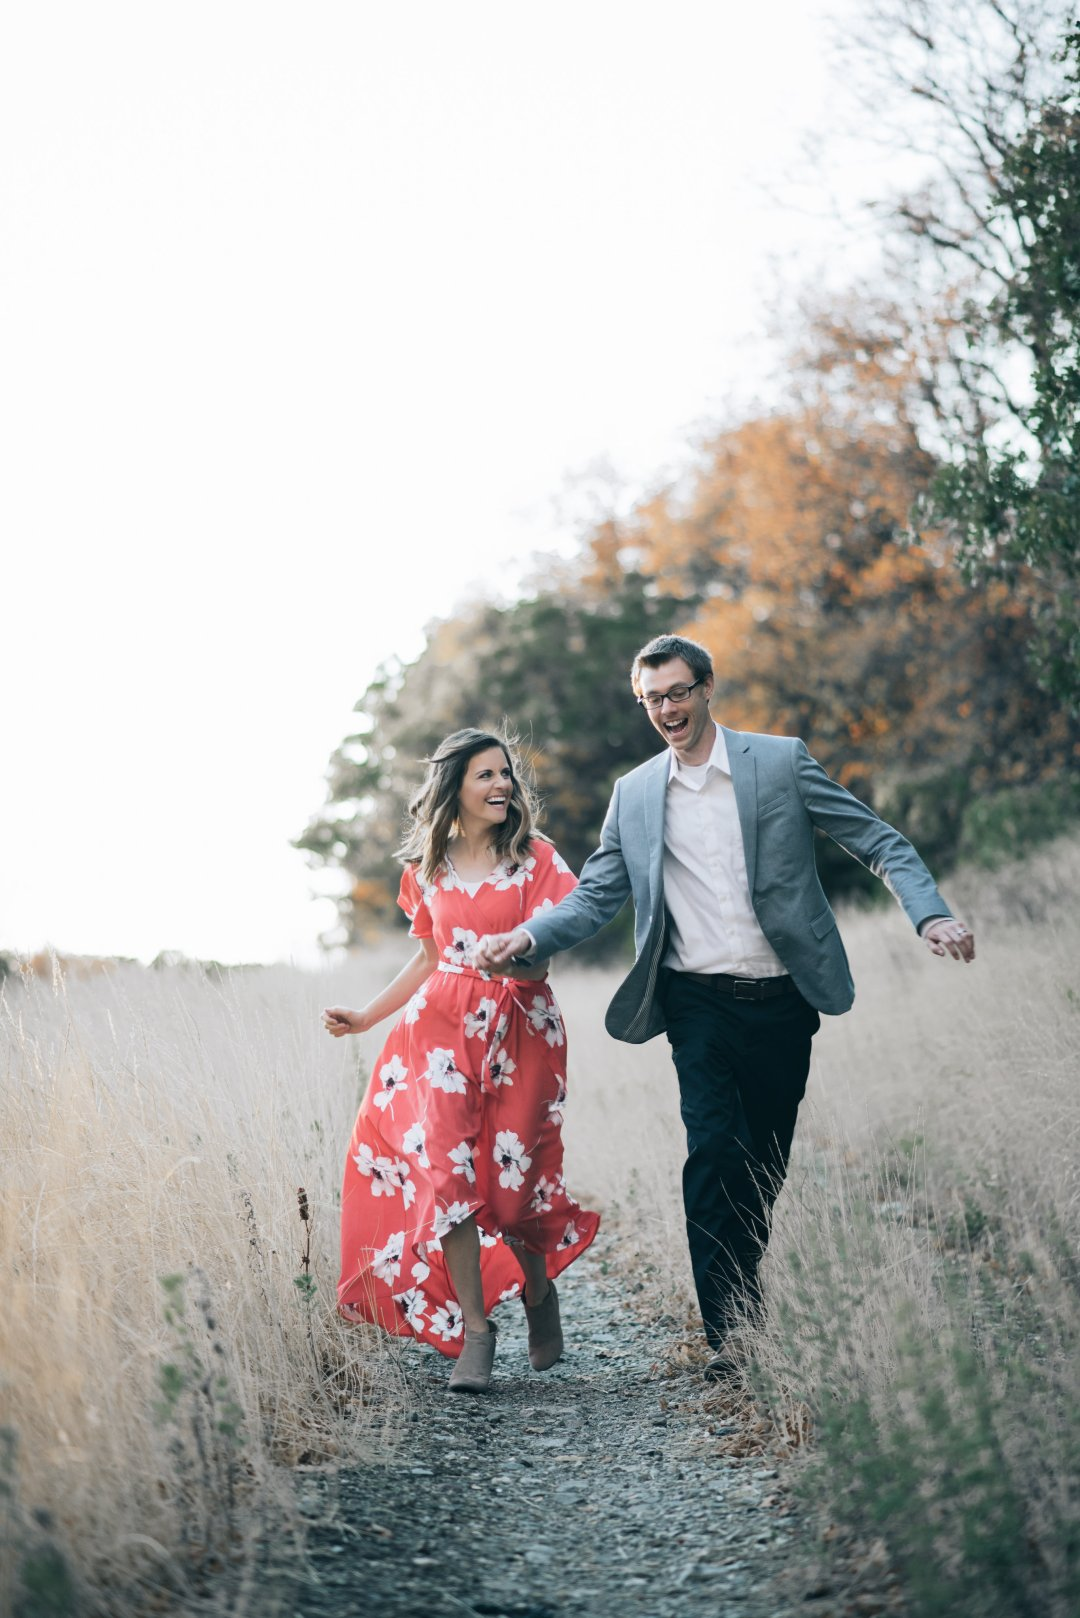 View More: http://rachellaukatphotography.pass.us/karli--kyle